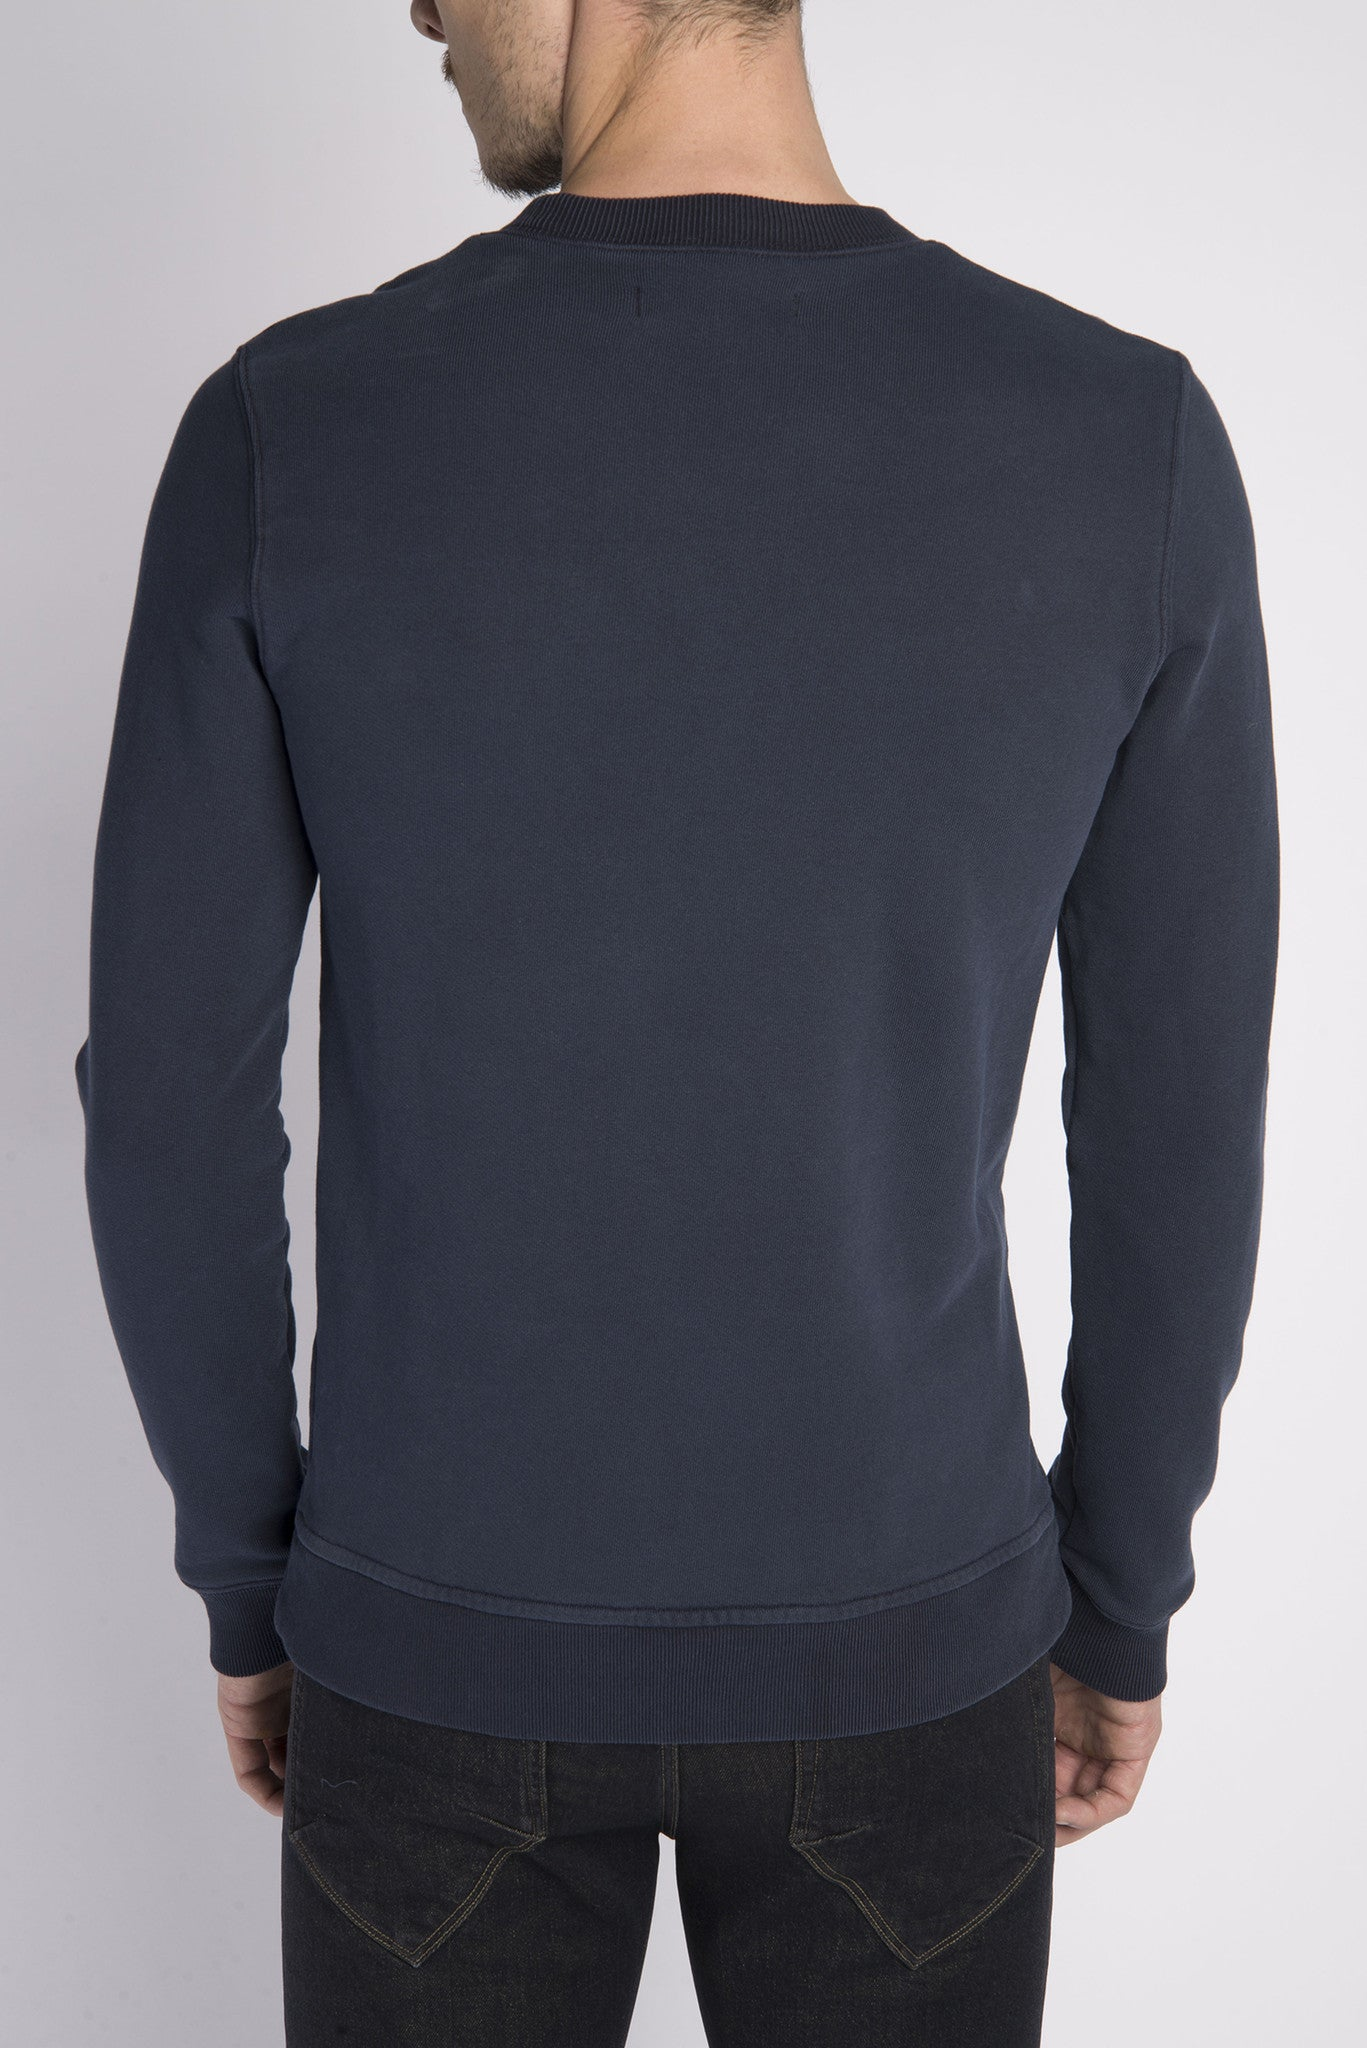 Crew Neck Sweatshirt - Navy